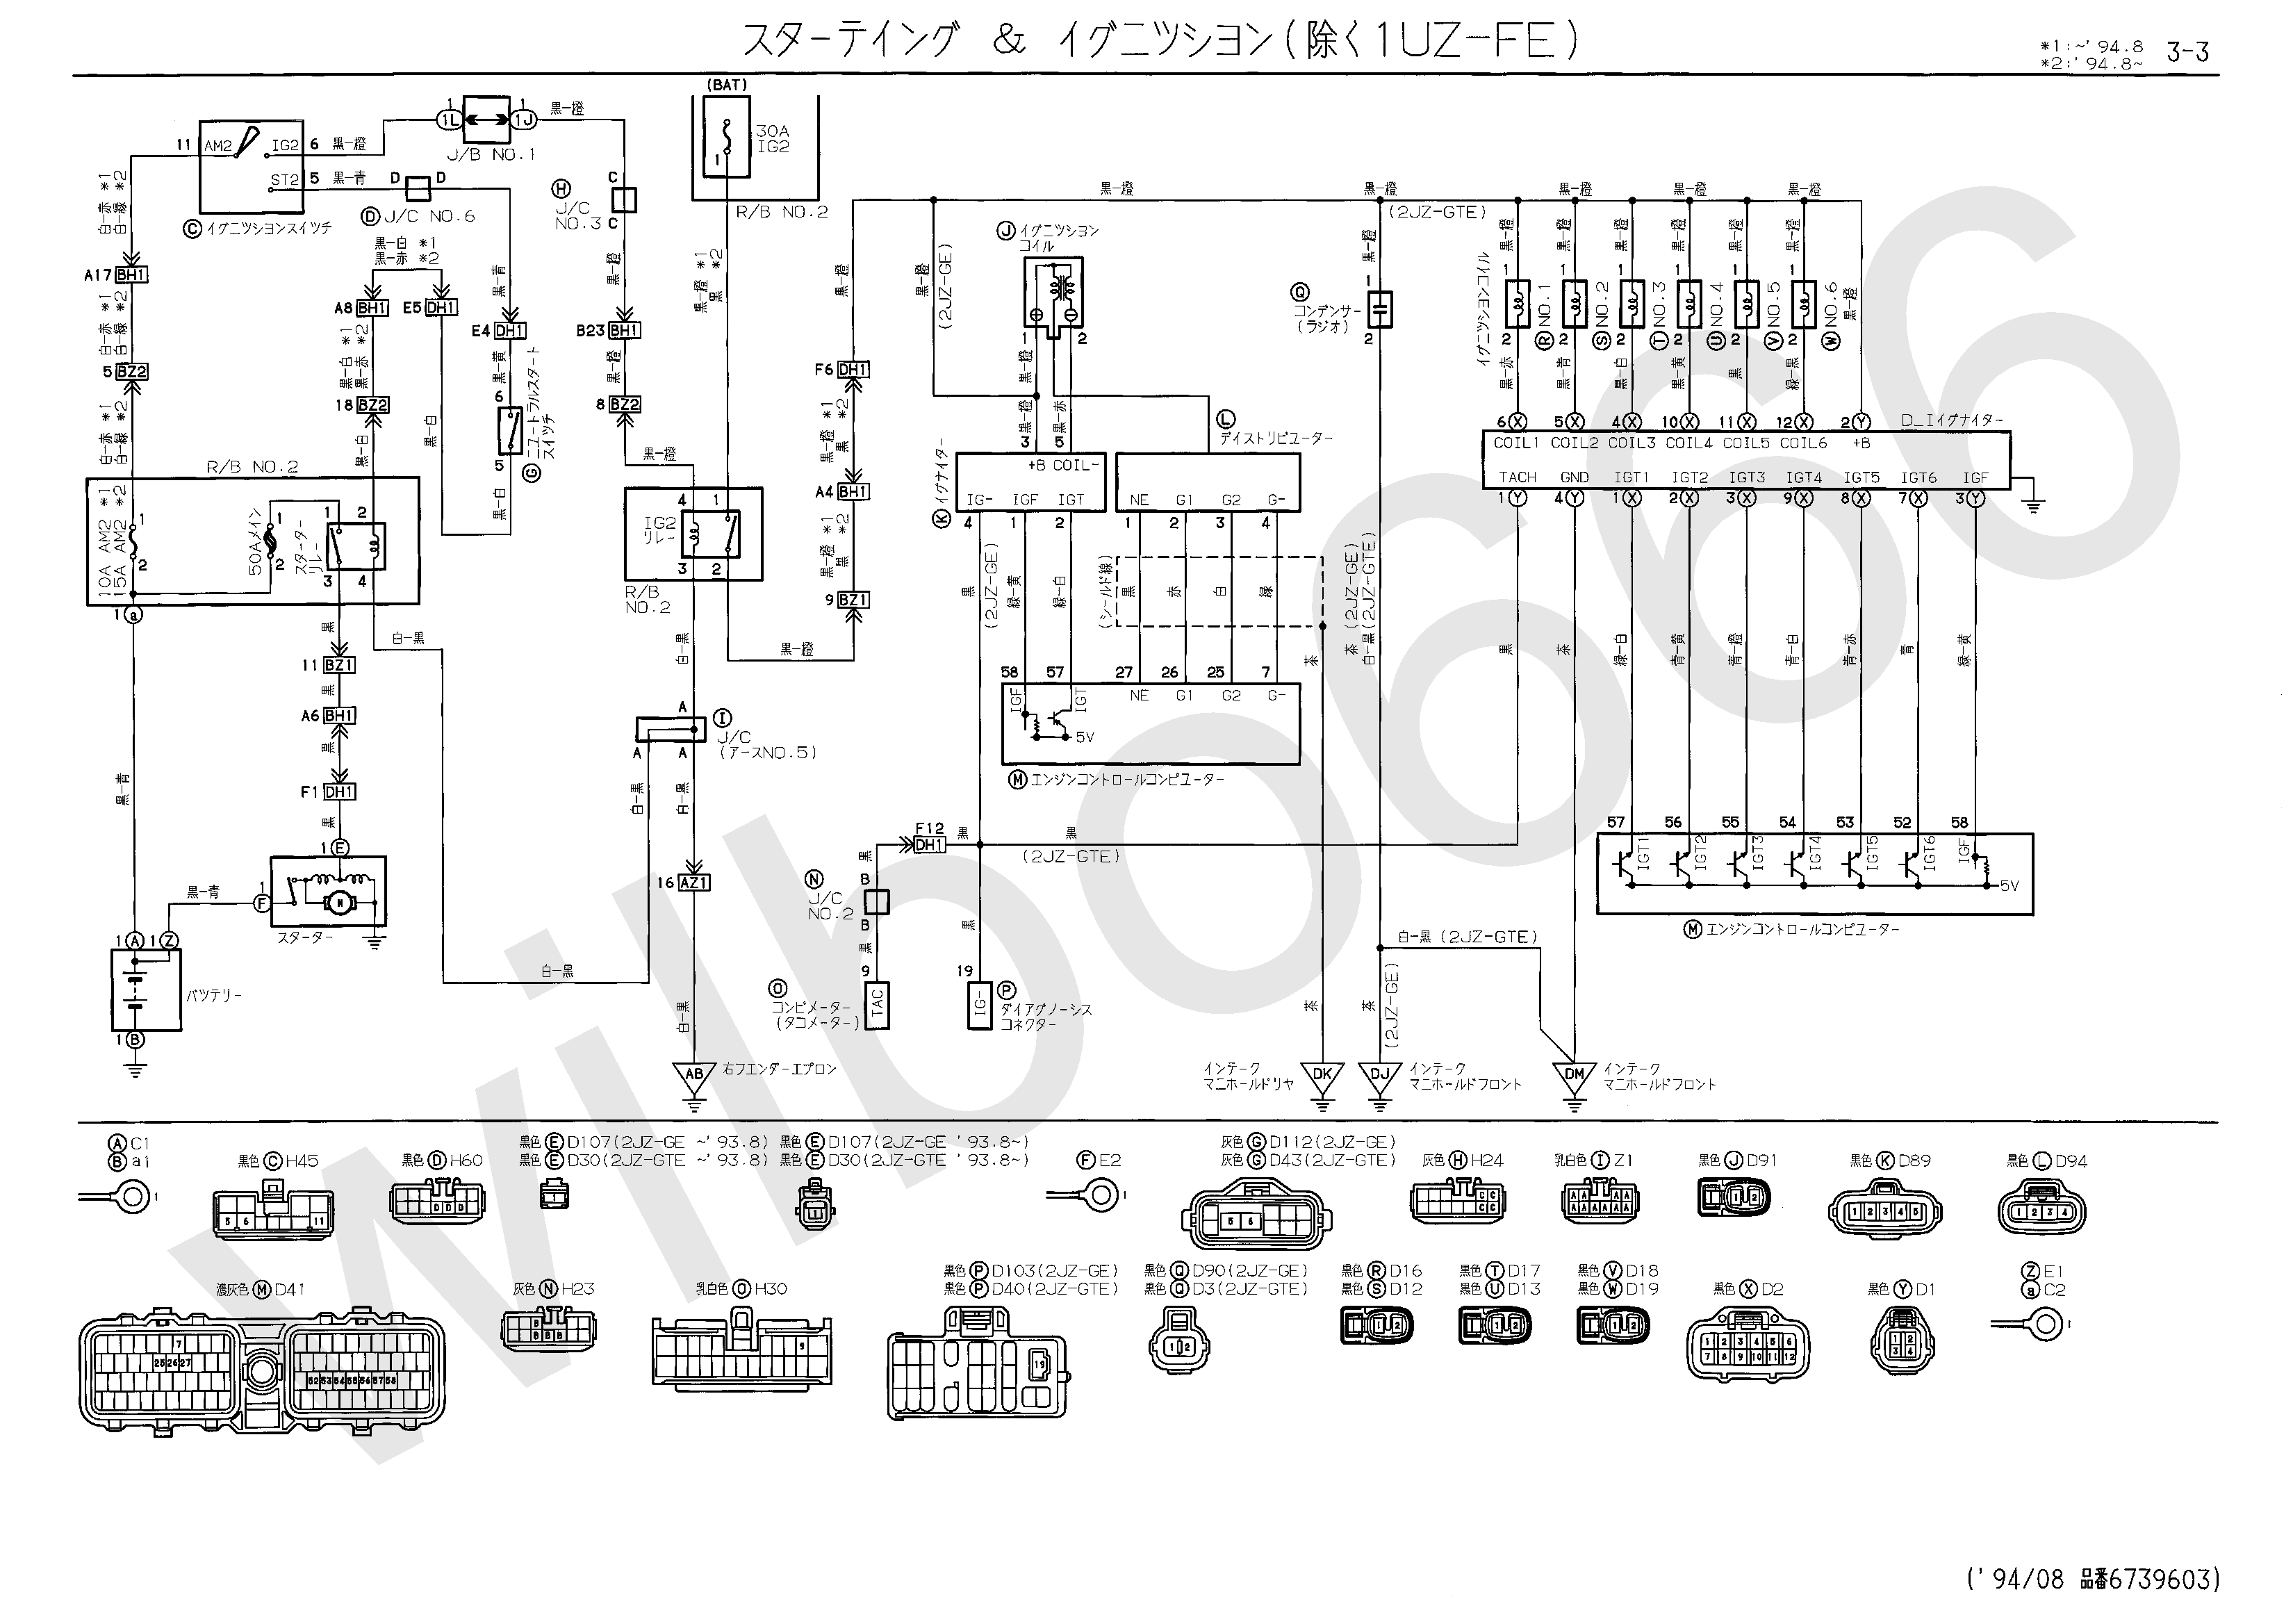 toyota alternator wiring diagram wiring diagram for toyota hilux alternator wiring wiring diagram for toyota hilux alternator wiring discover your